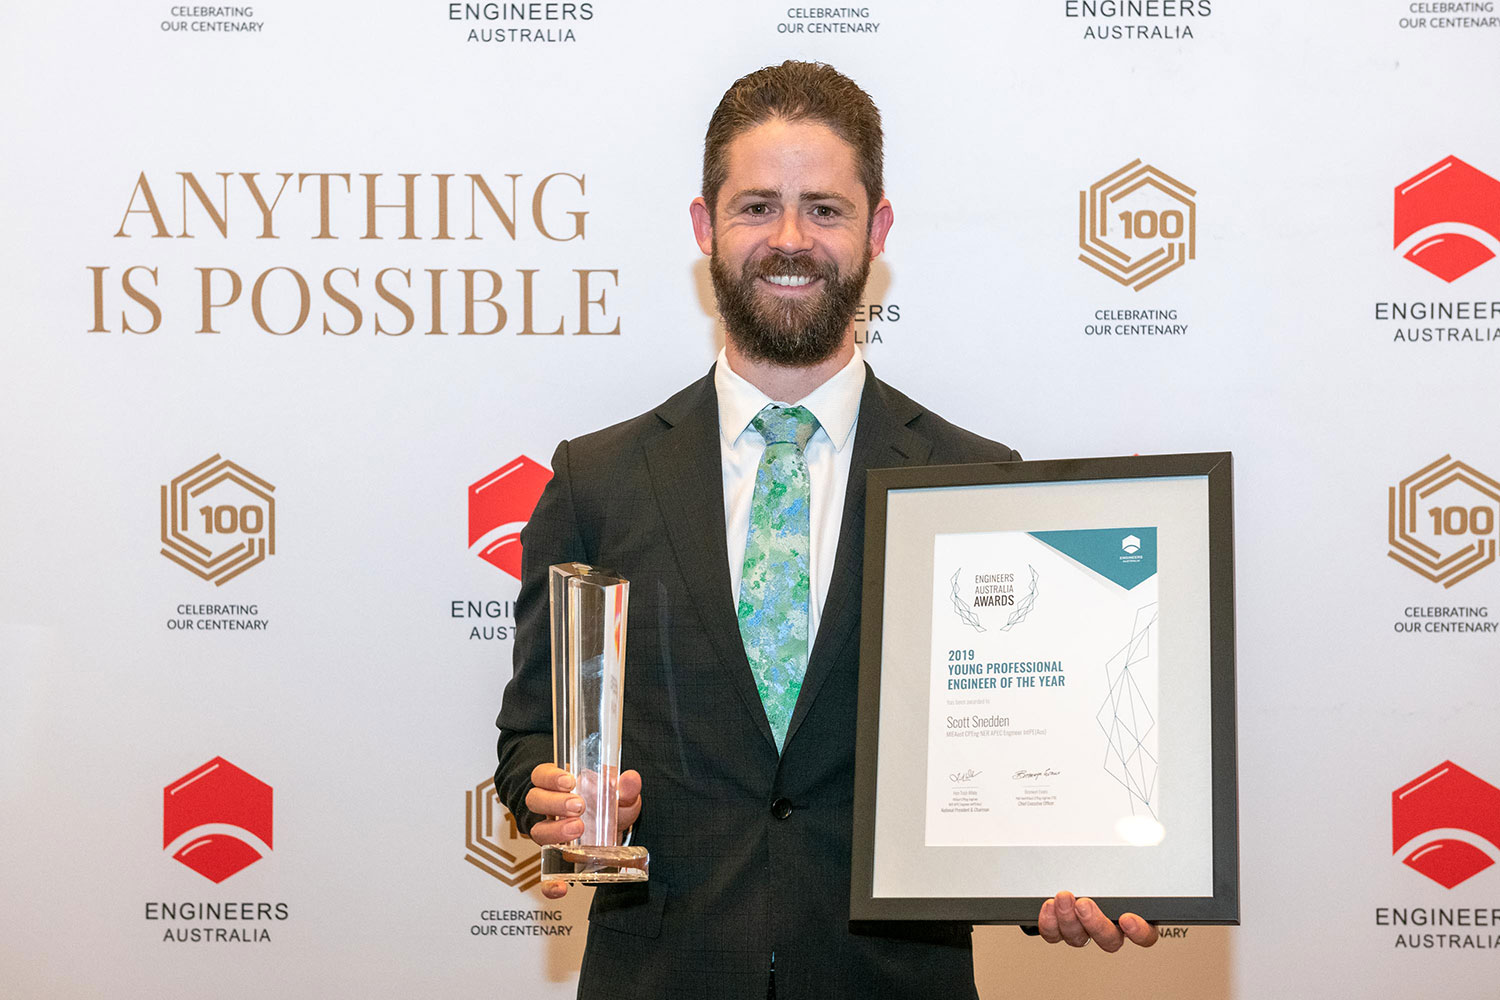 Young Engineering Professional of the Year Scott Snedden.